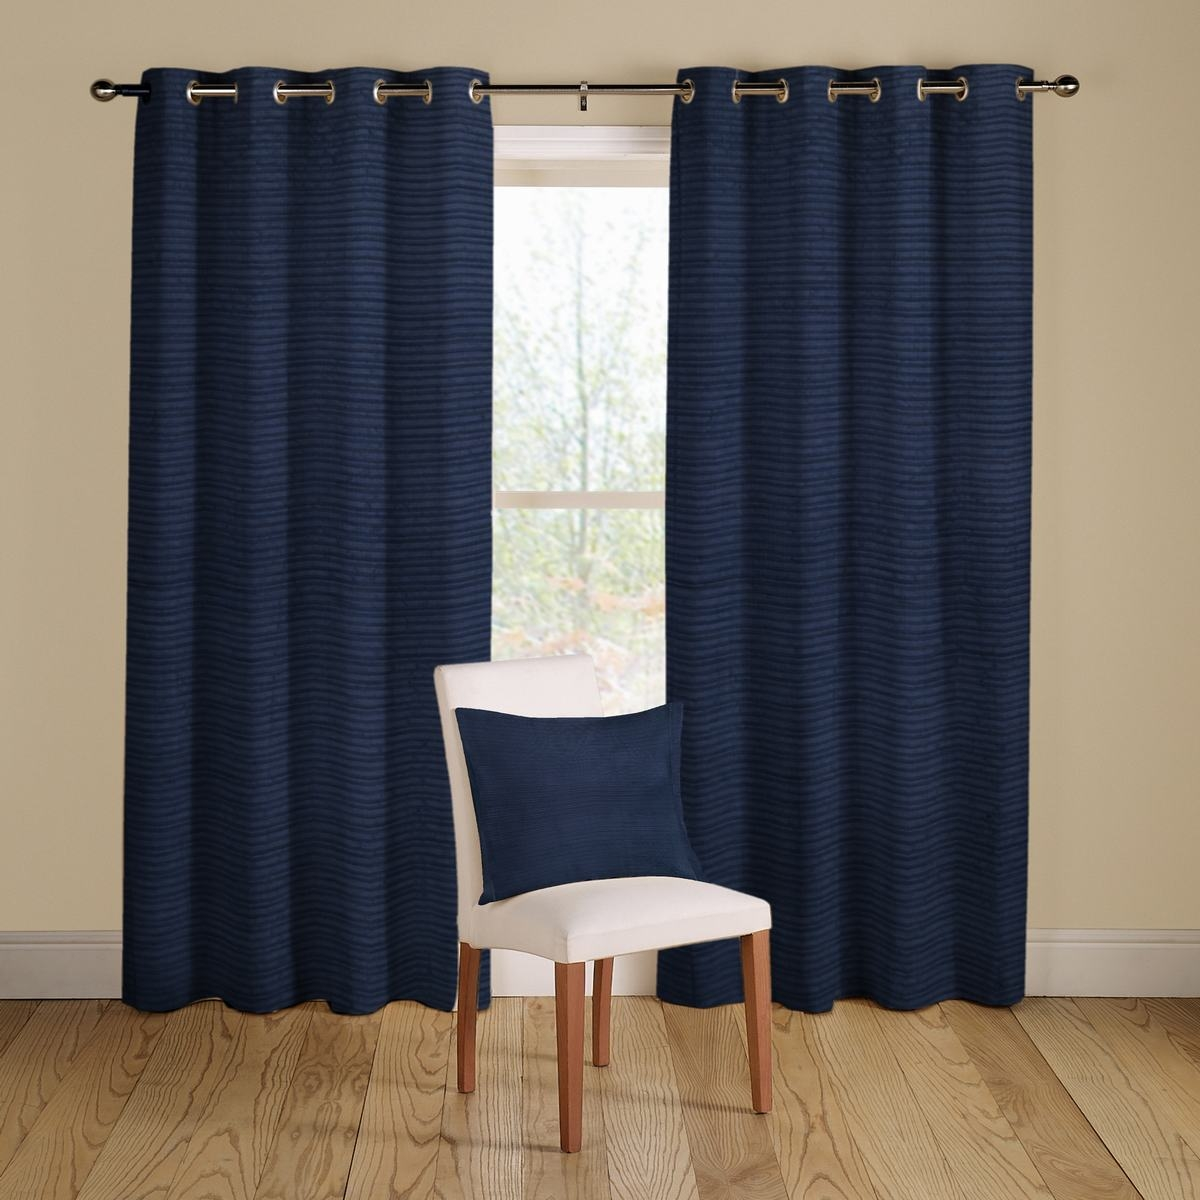 Navy Blue Curtains Pertaining To Navy And White Curtains (Image 17 of 25)